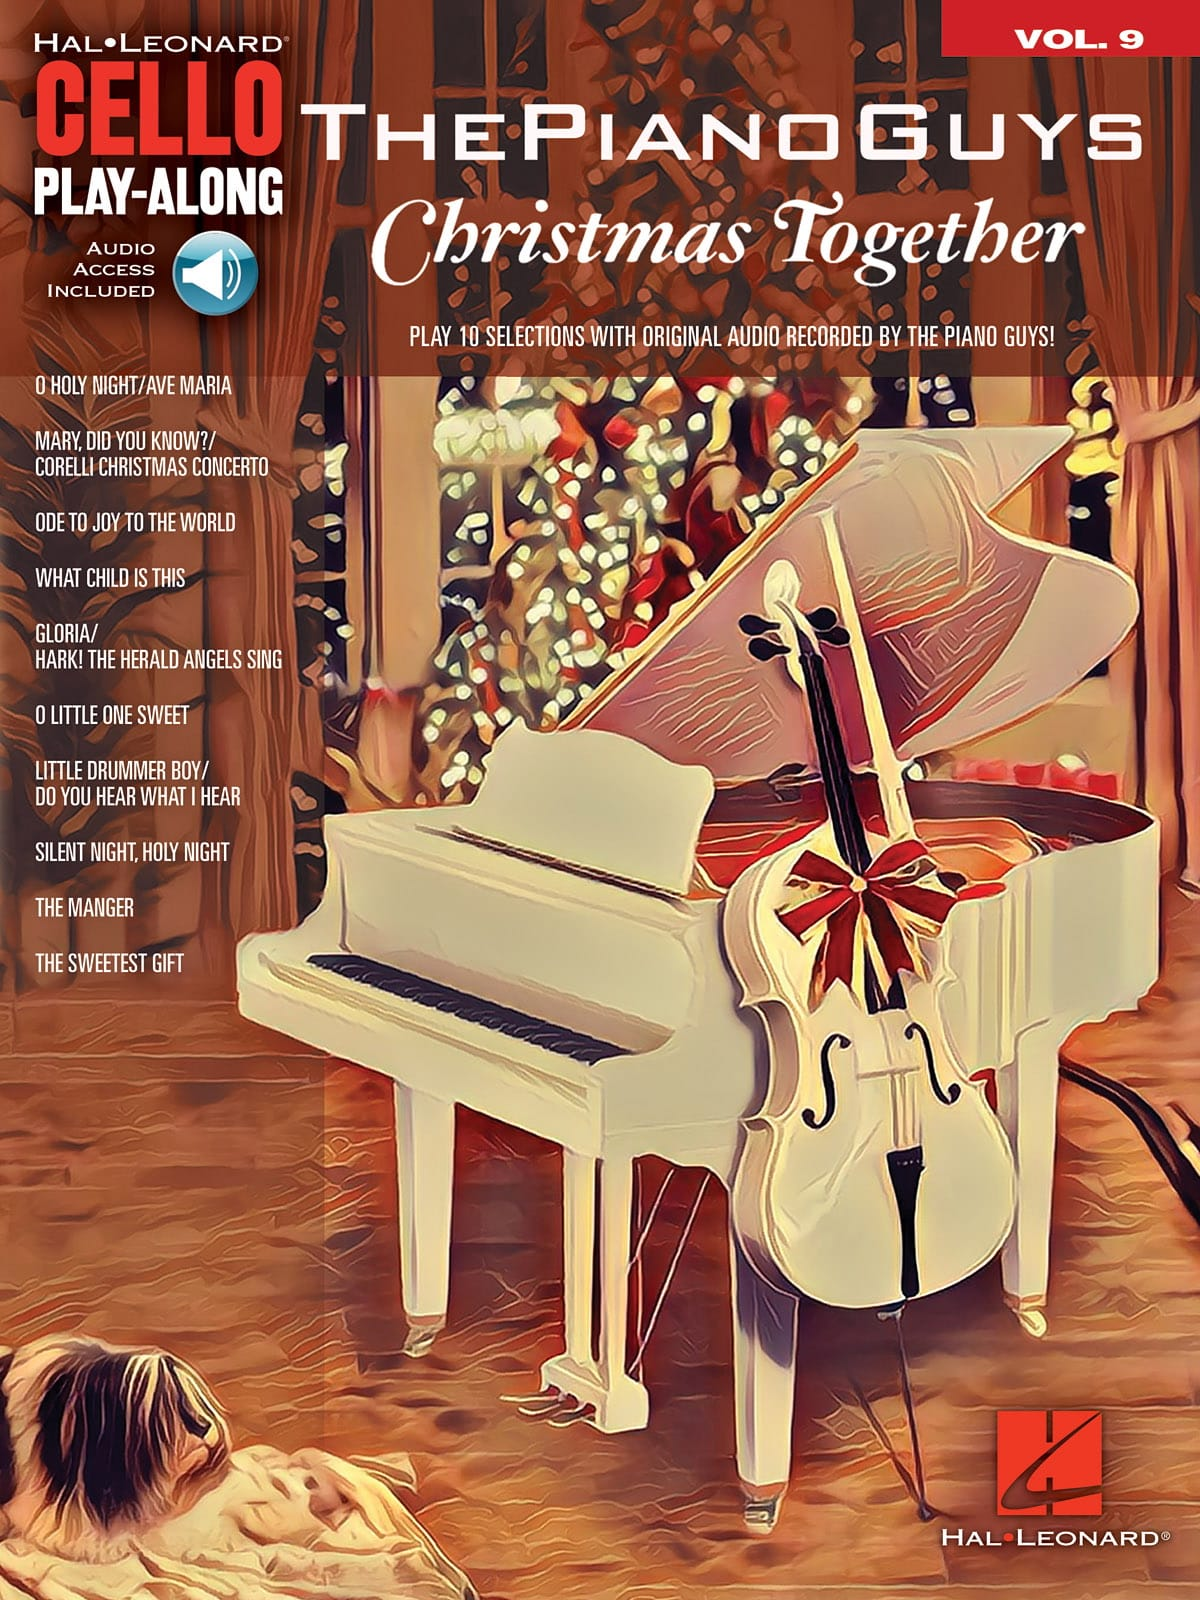 ThePianoGuys - Cello Play-Along Volume 9 - The Piano Guys - Christmas Together - Partition - di-arezzo.com